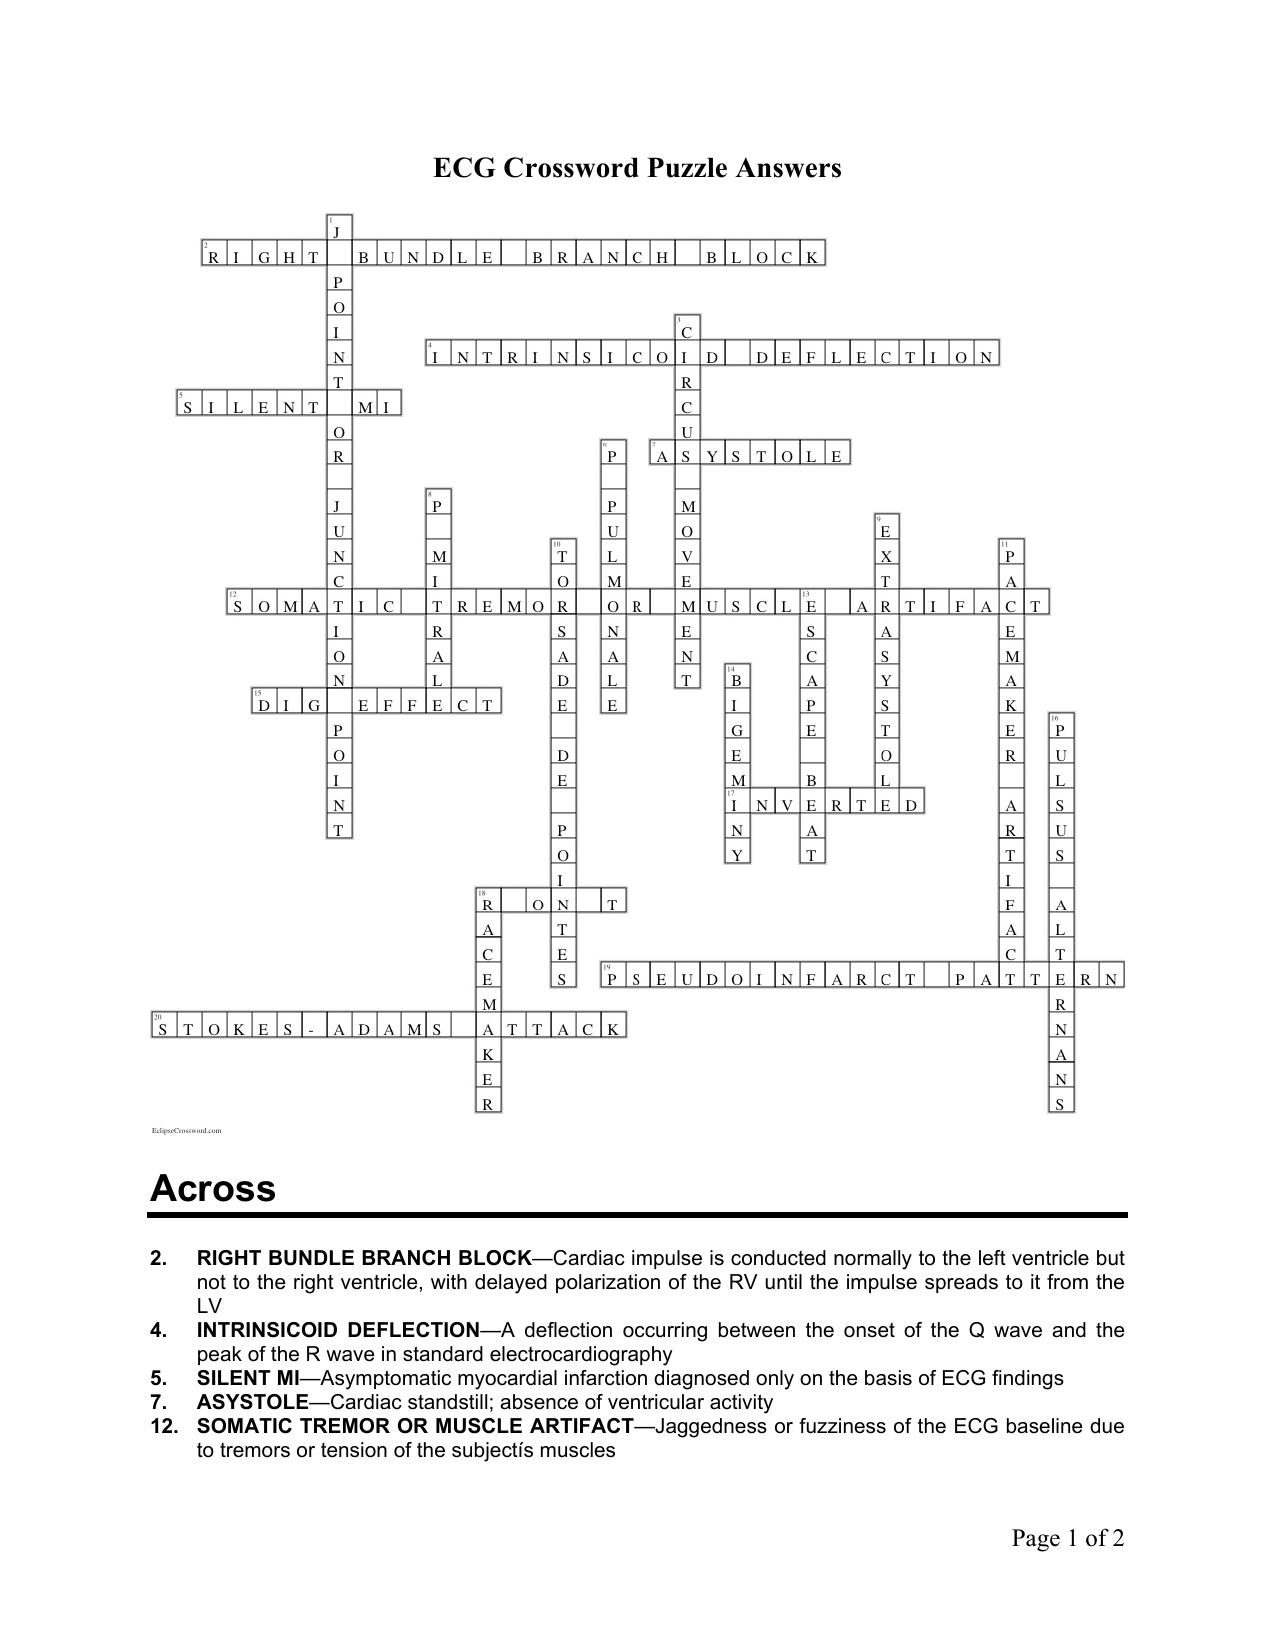 Heart Disease Crossword Puzzle Answers